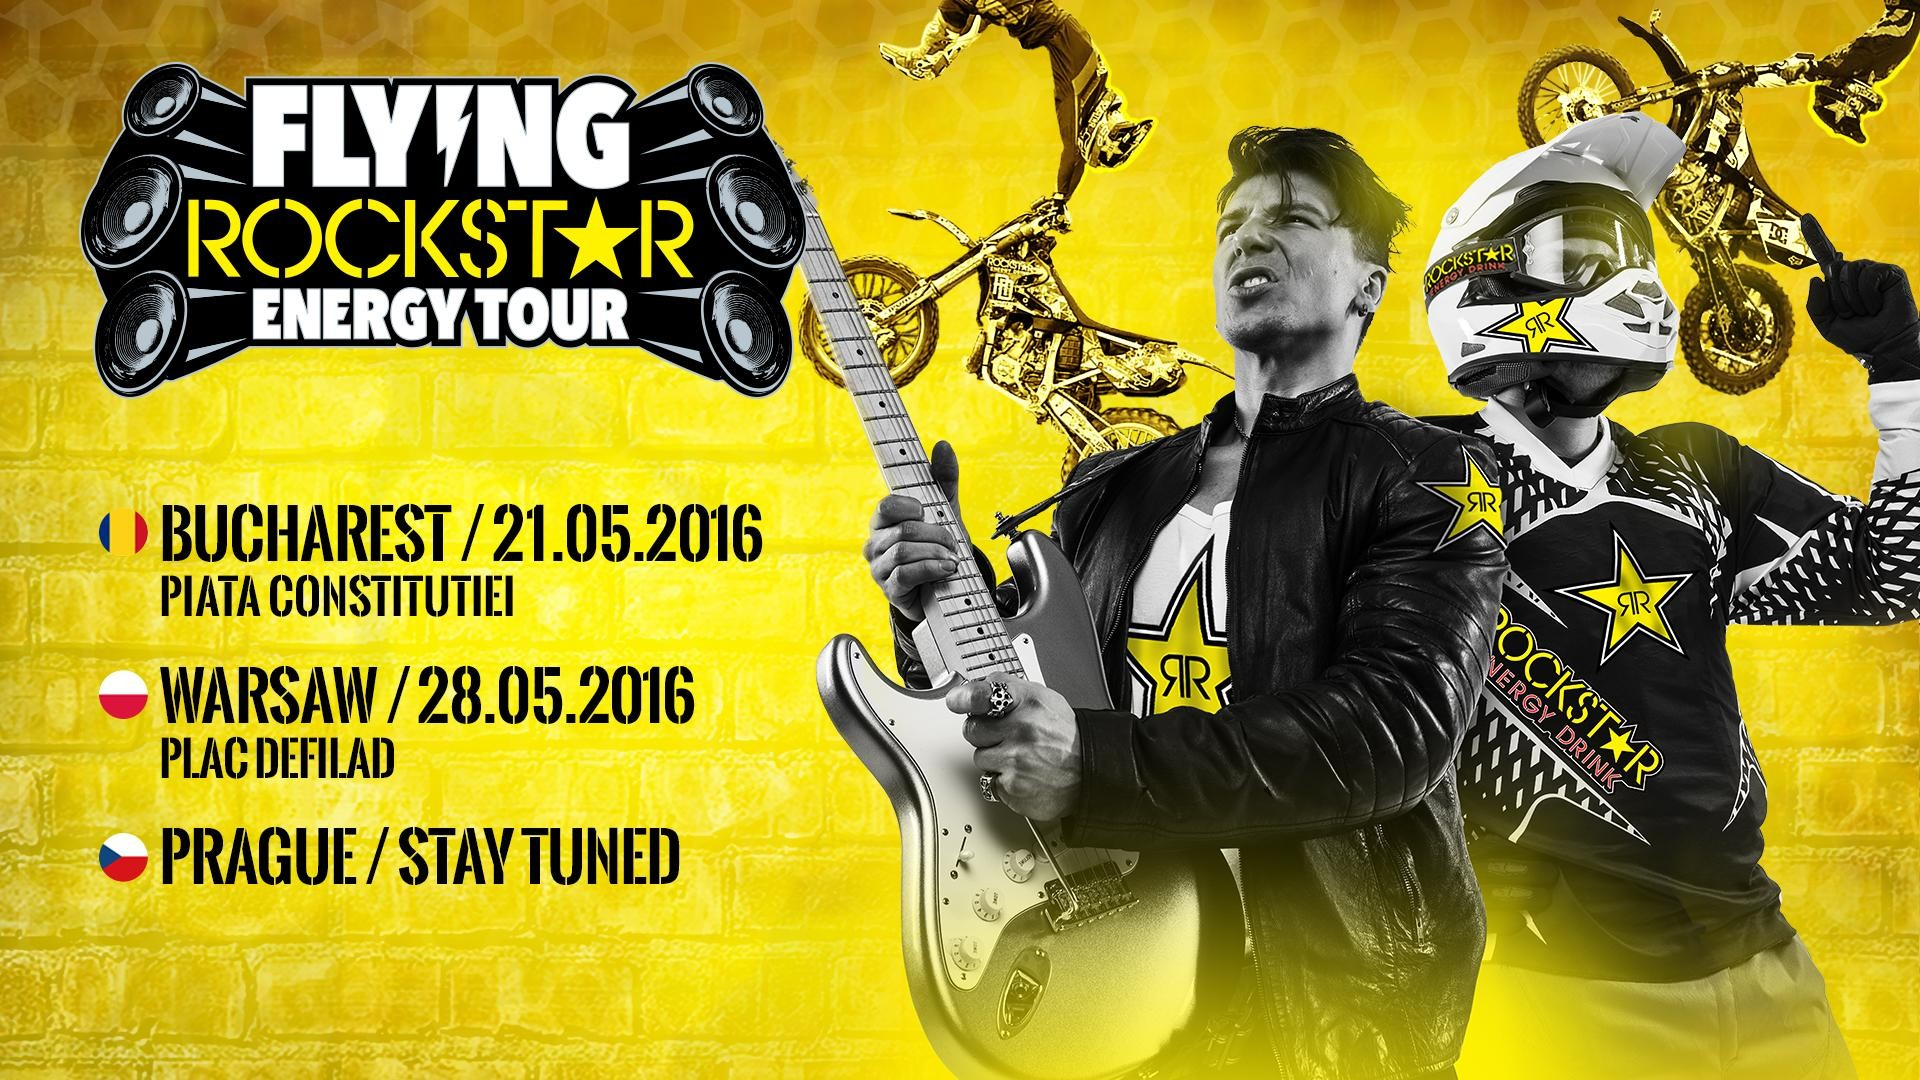 Rockstar Energy Wallpaper 72 Images